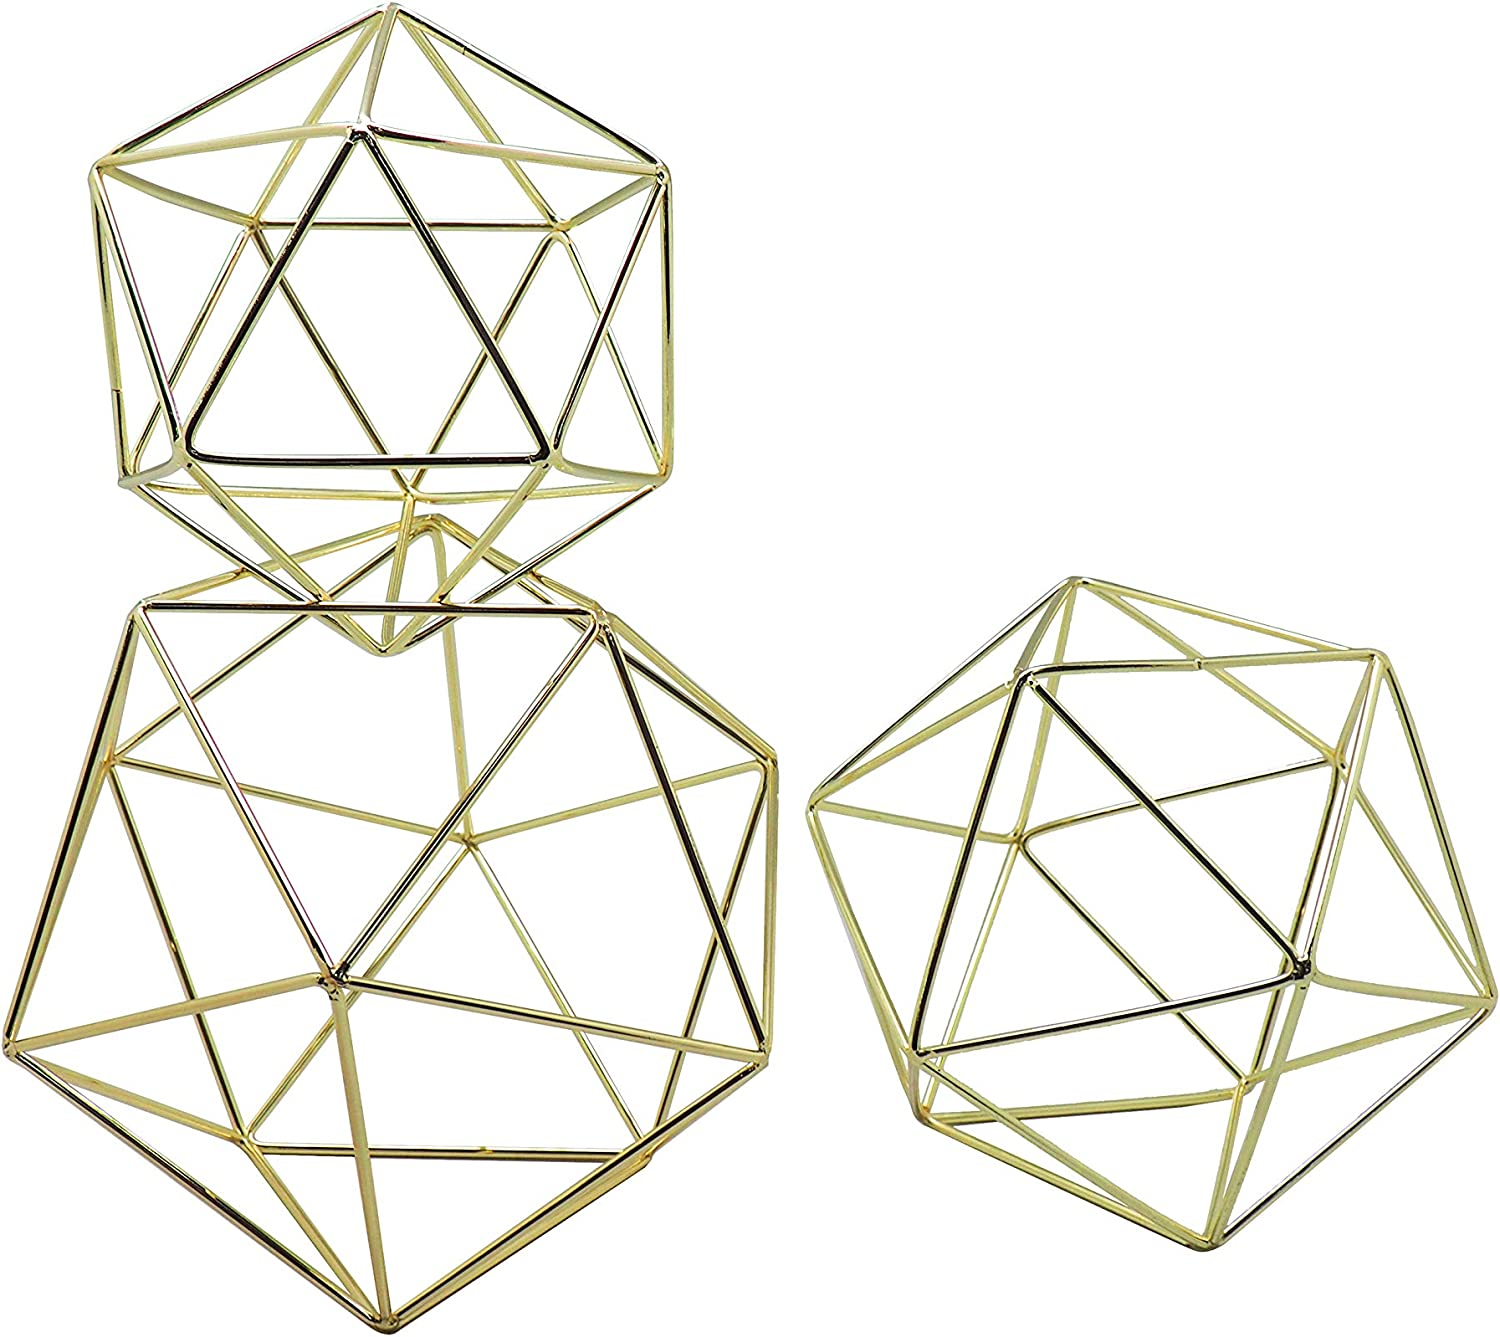 Amazon Com Koyal Wholesale Geometric Decor Shapes Set Of 3 Assorted Sizes For Table Centerpiece Flower Holders Gold 3d Hanging Decorations Himmelis Prisms Home Kitchen